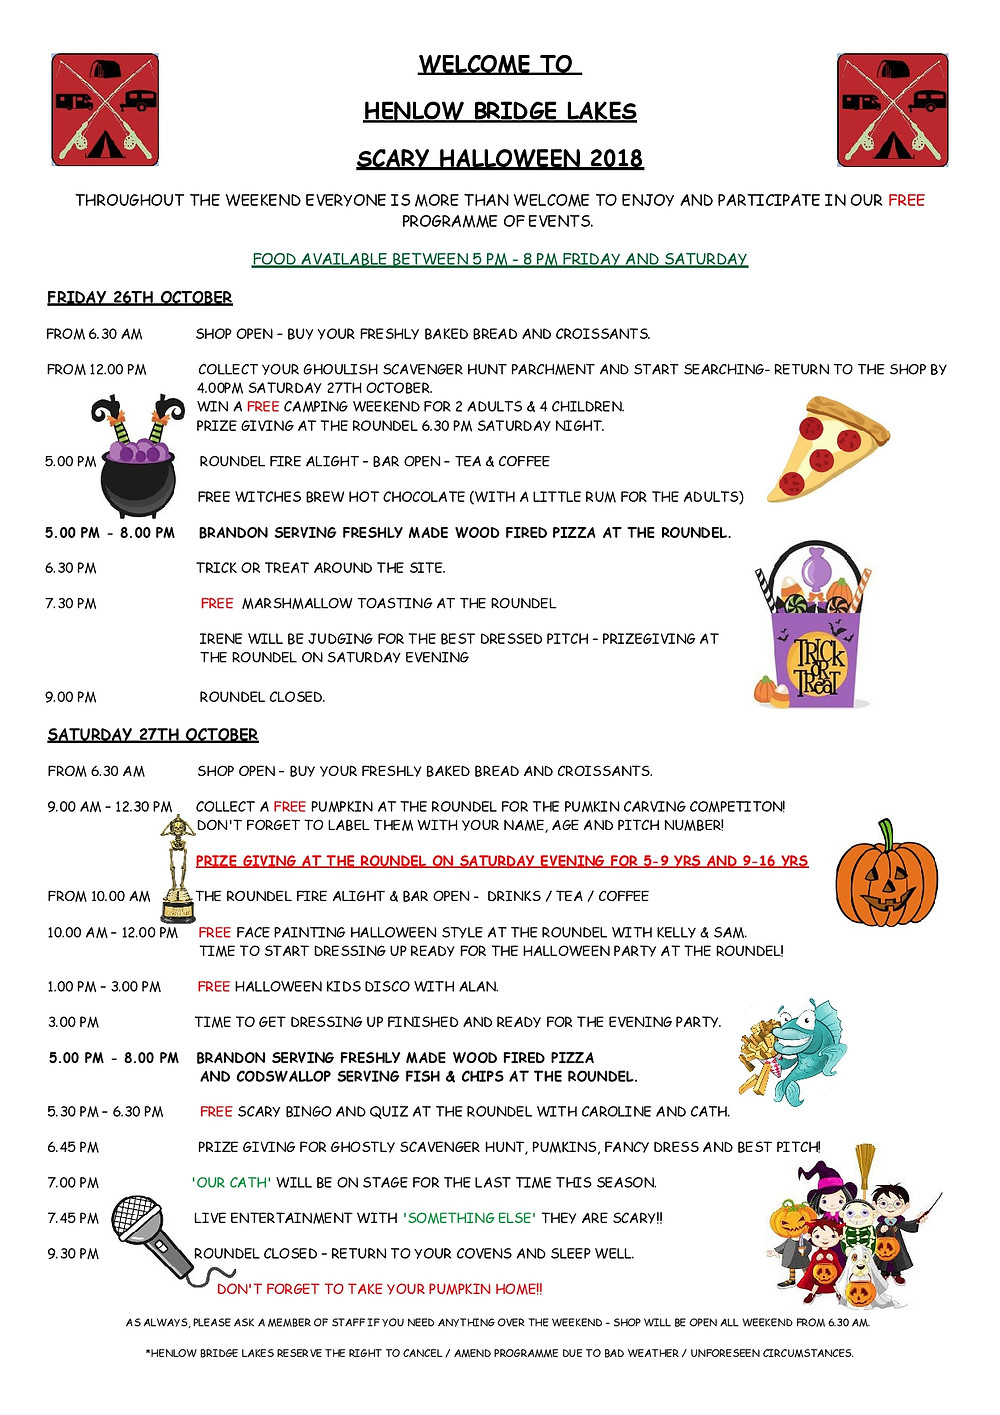 Halloween itinerary for henlow bridge lakes October 2018